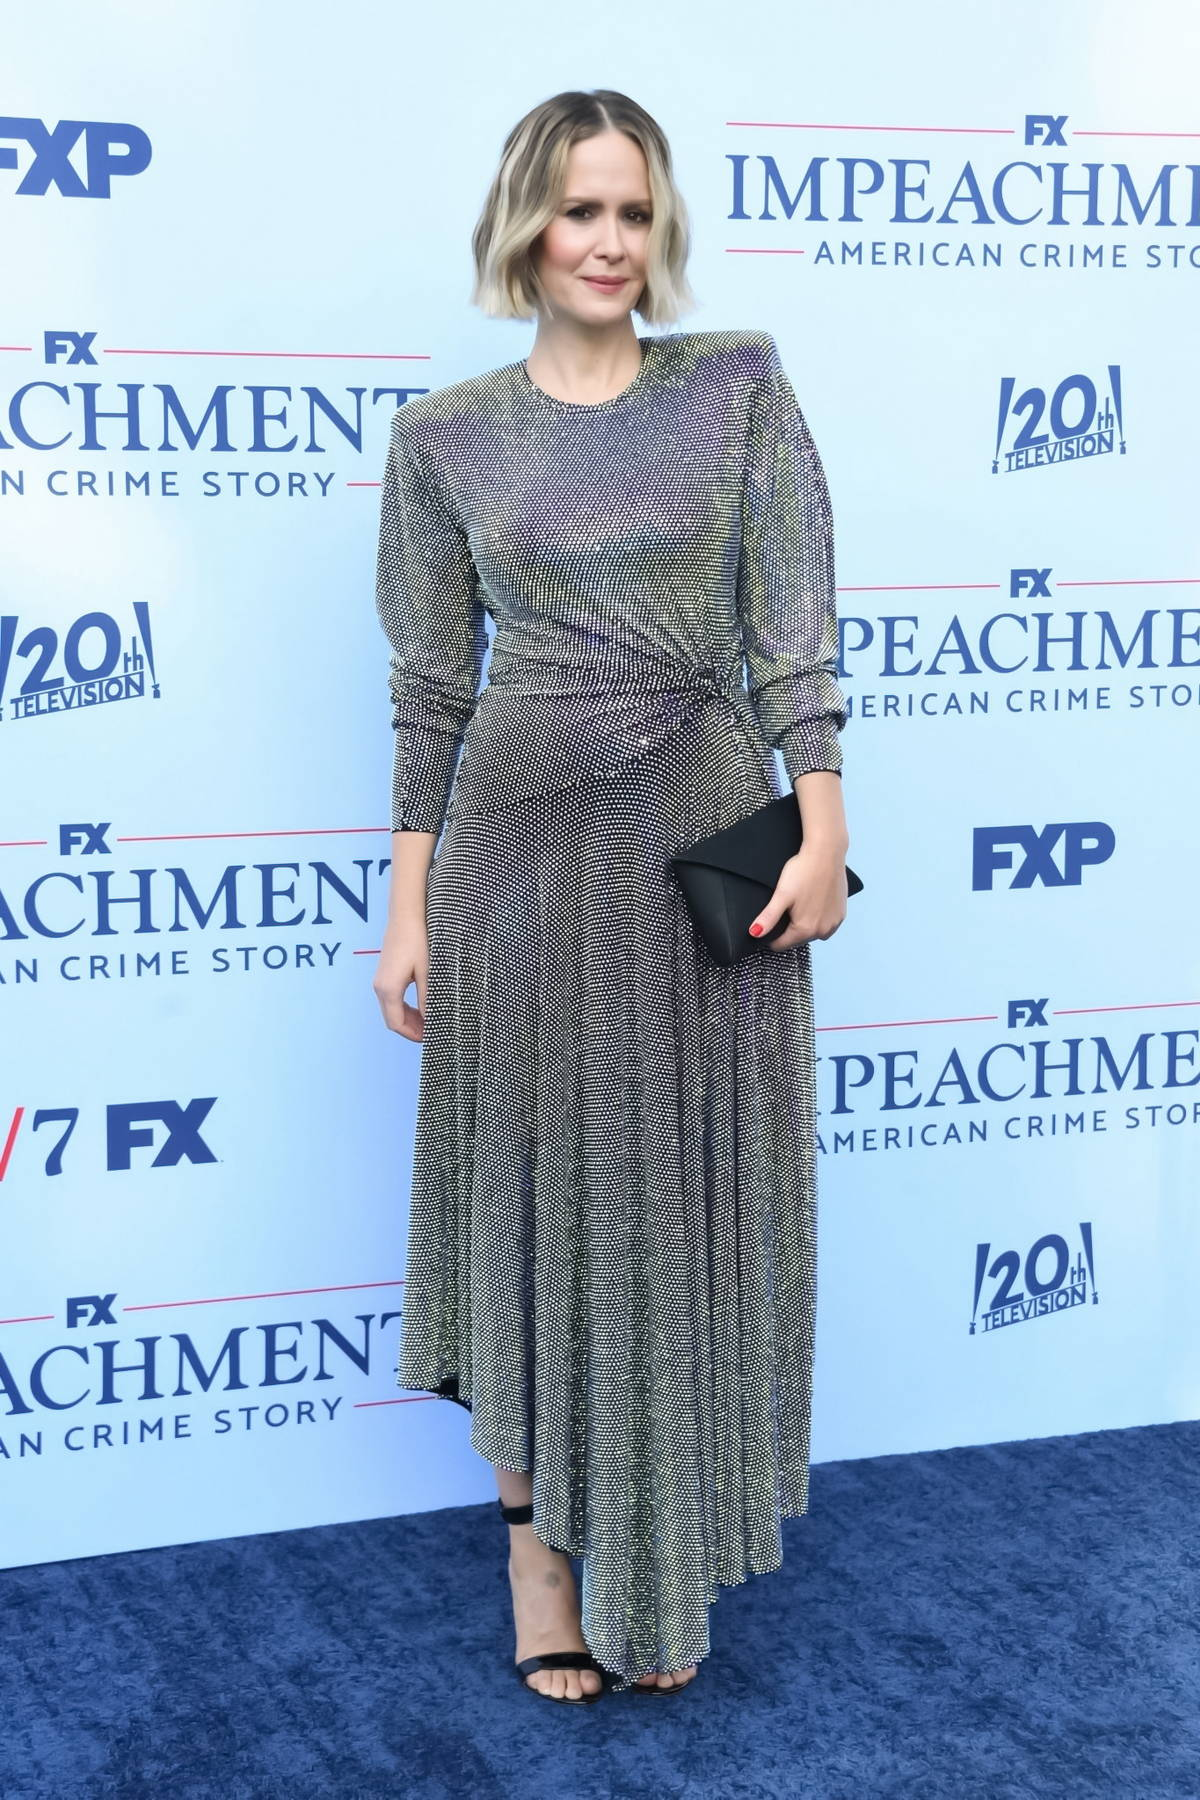 Sarah Paulson attends the Premiere of FX's 'Impeachment: American Crime Story' in West Hollywood, California